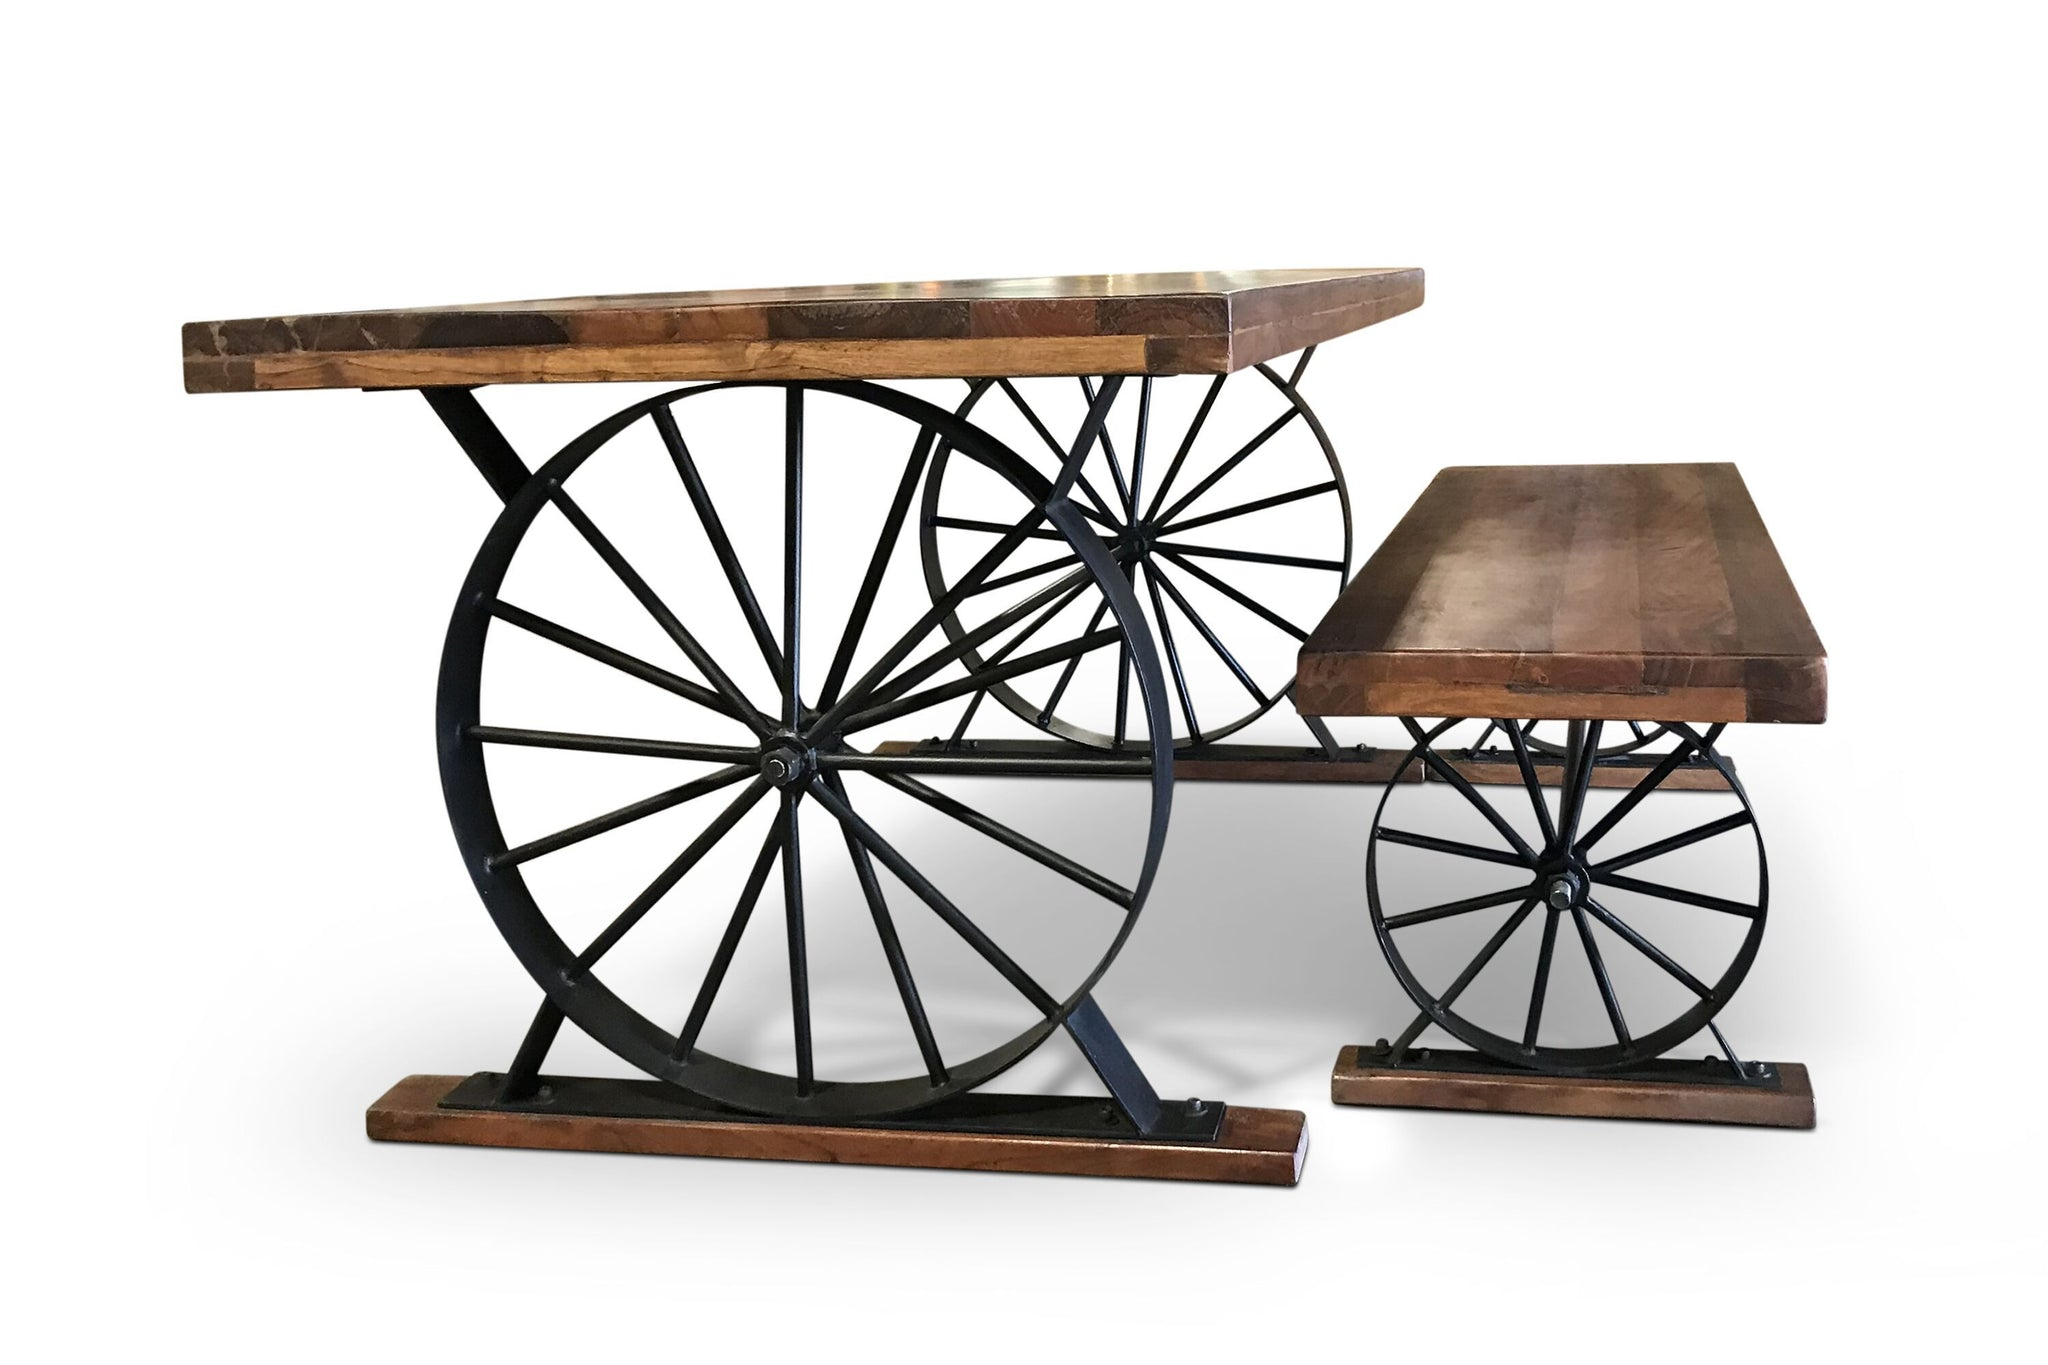 Awe Inspiring Wagon Wheel Table And Bench Set Solid Hardwood Iron Base Unemploymentrelief Wooden Chair Designs For Living Room Unemploymentrelieforg